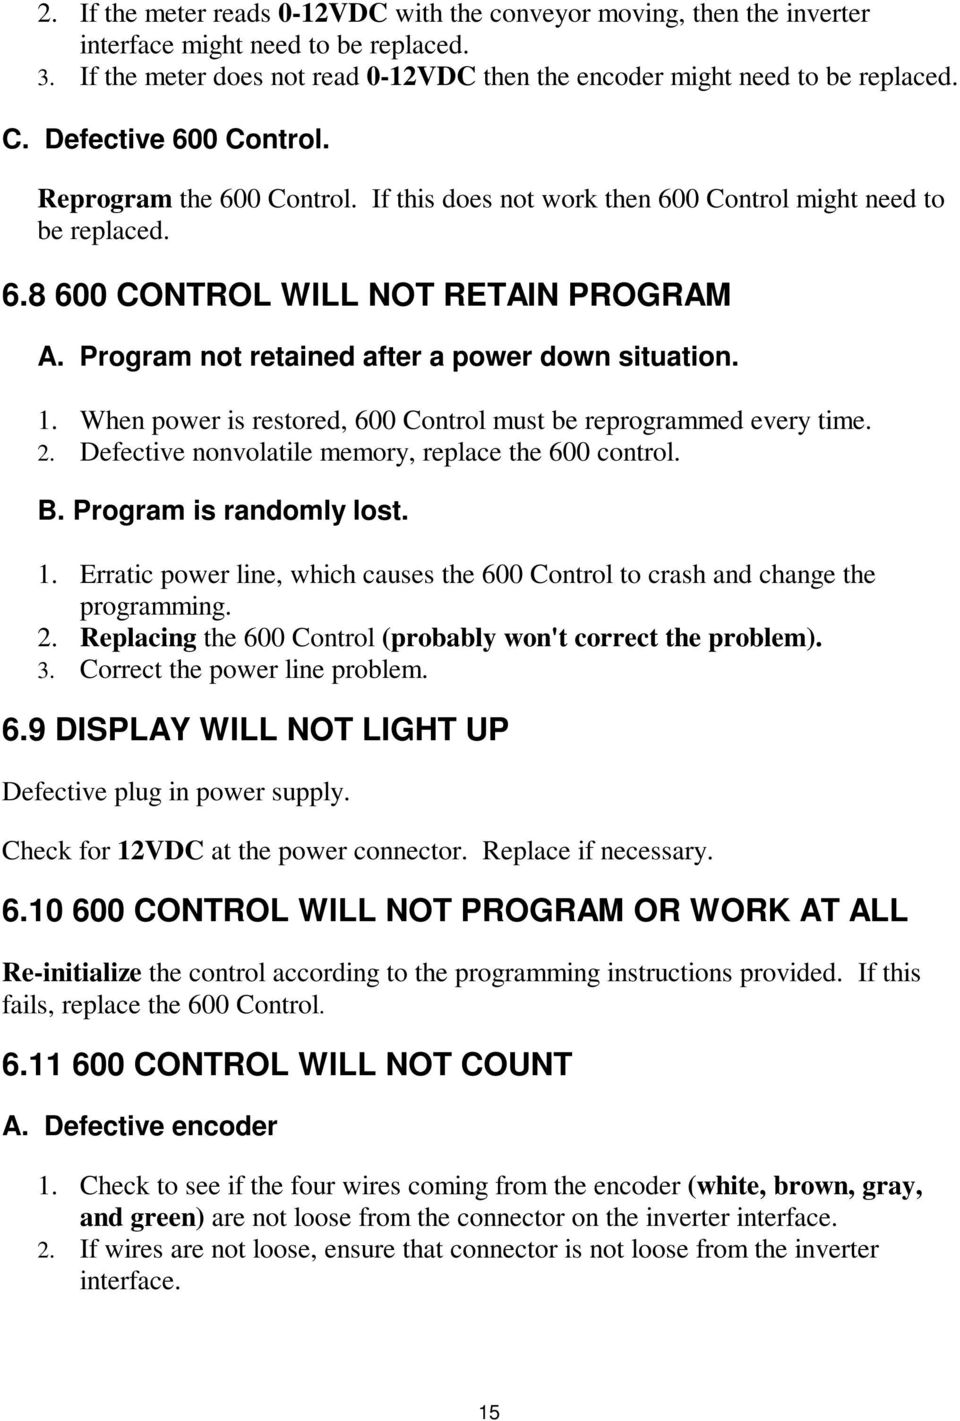 Program not retained after a power down situation. 1. When power is restored, 600 Control must be reprogrammed every time. 2. Defective nonvolatile memory, replace the 600 control. B.